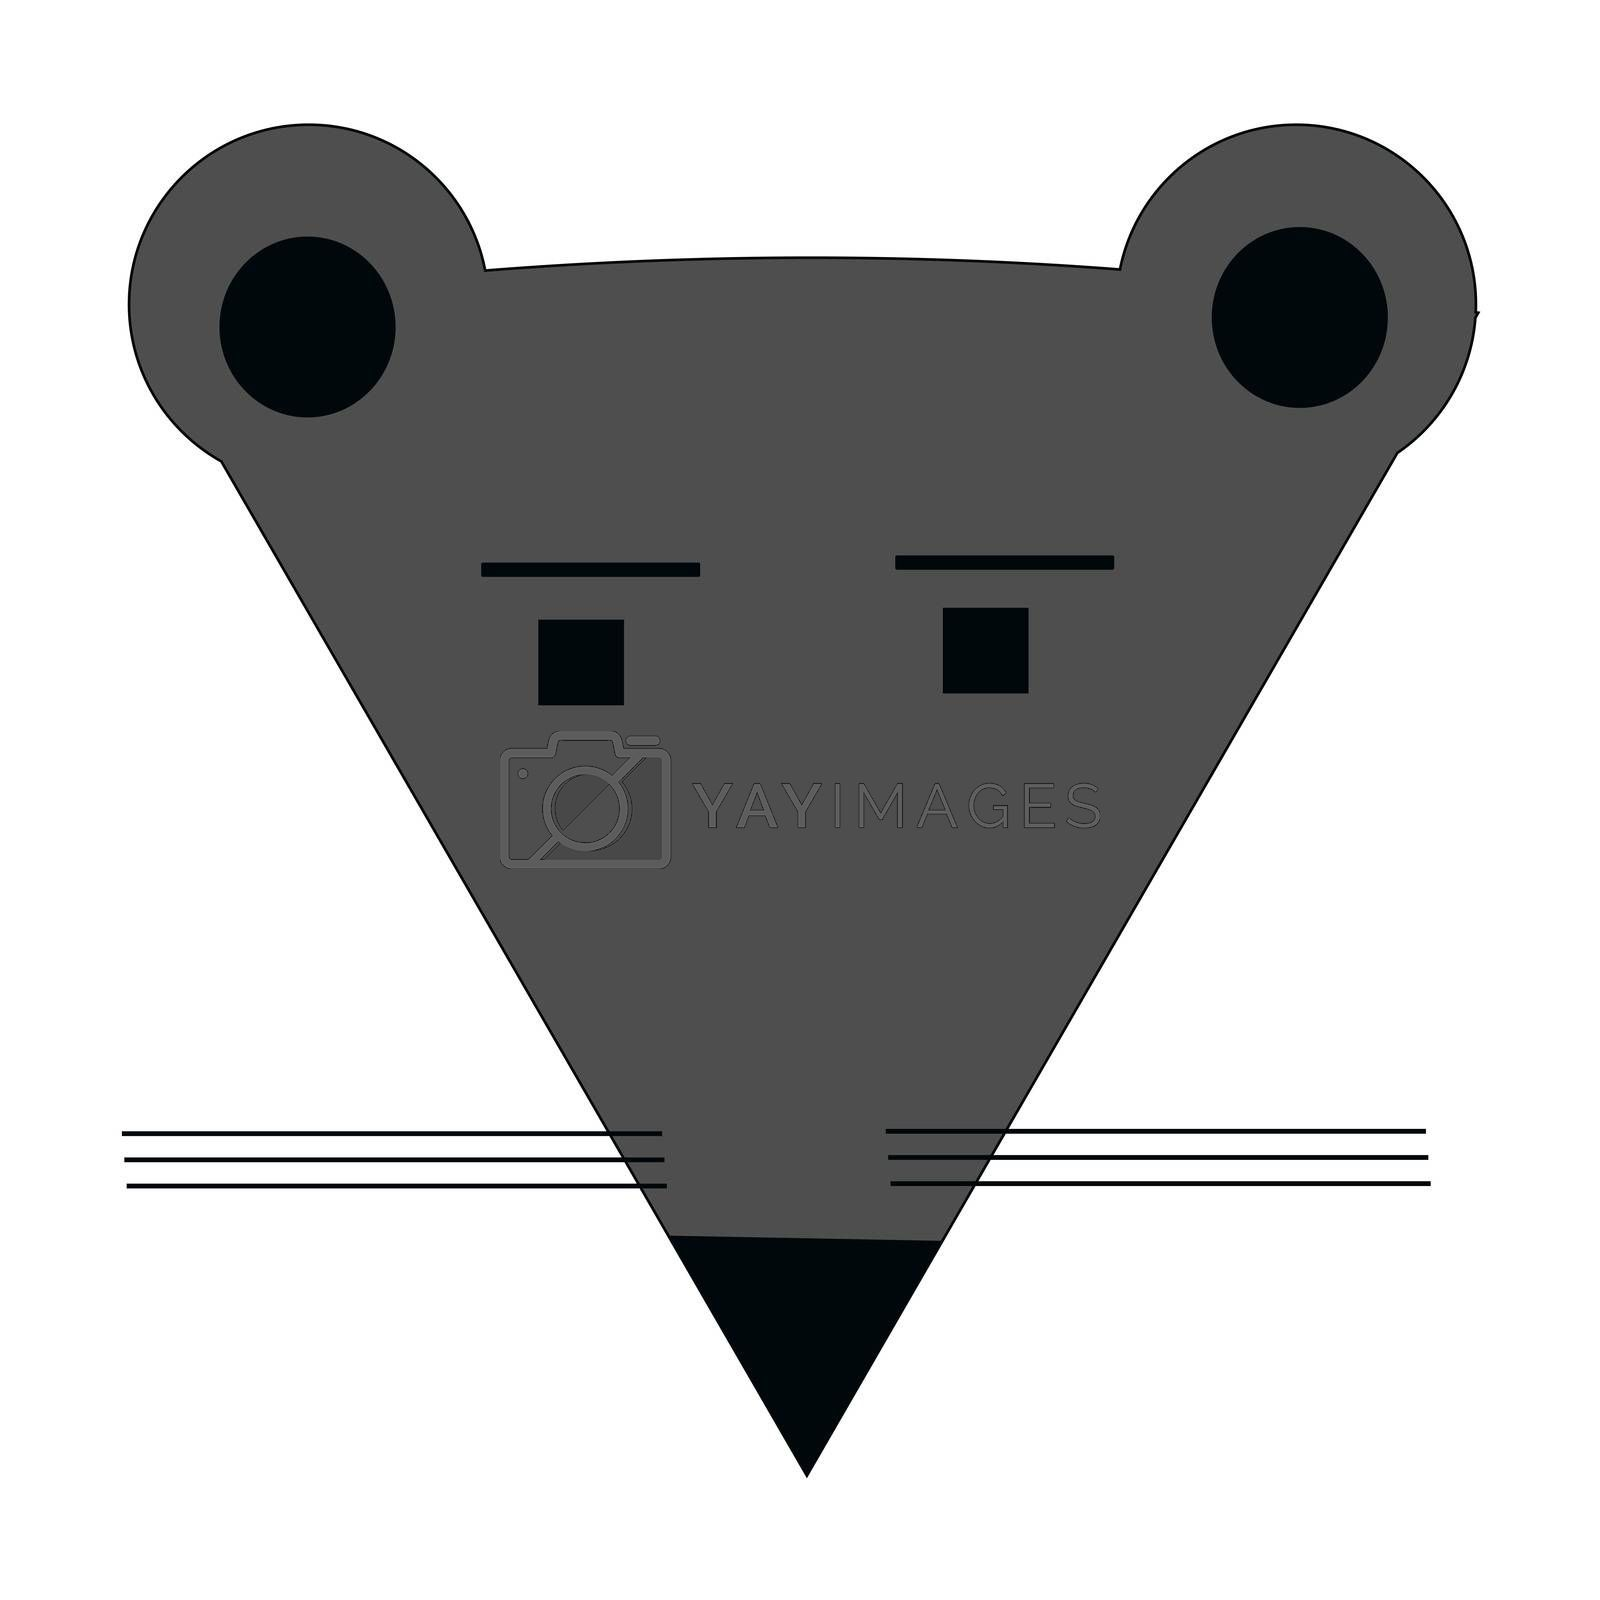 flat icon or icon in the form of a mouse face. illustration.